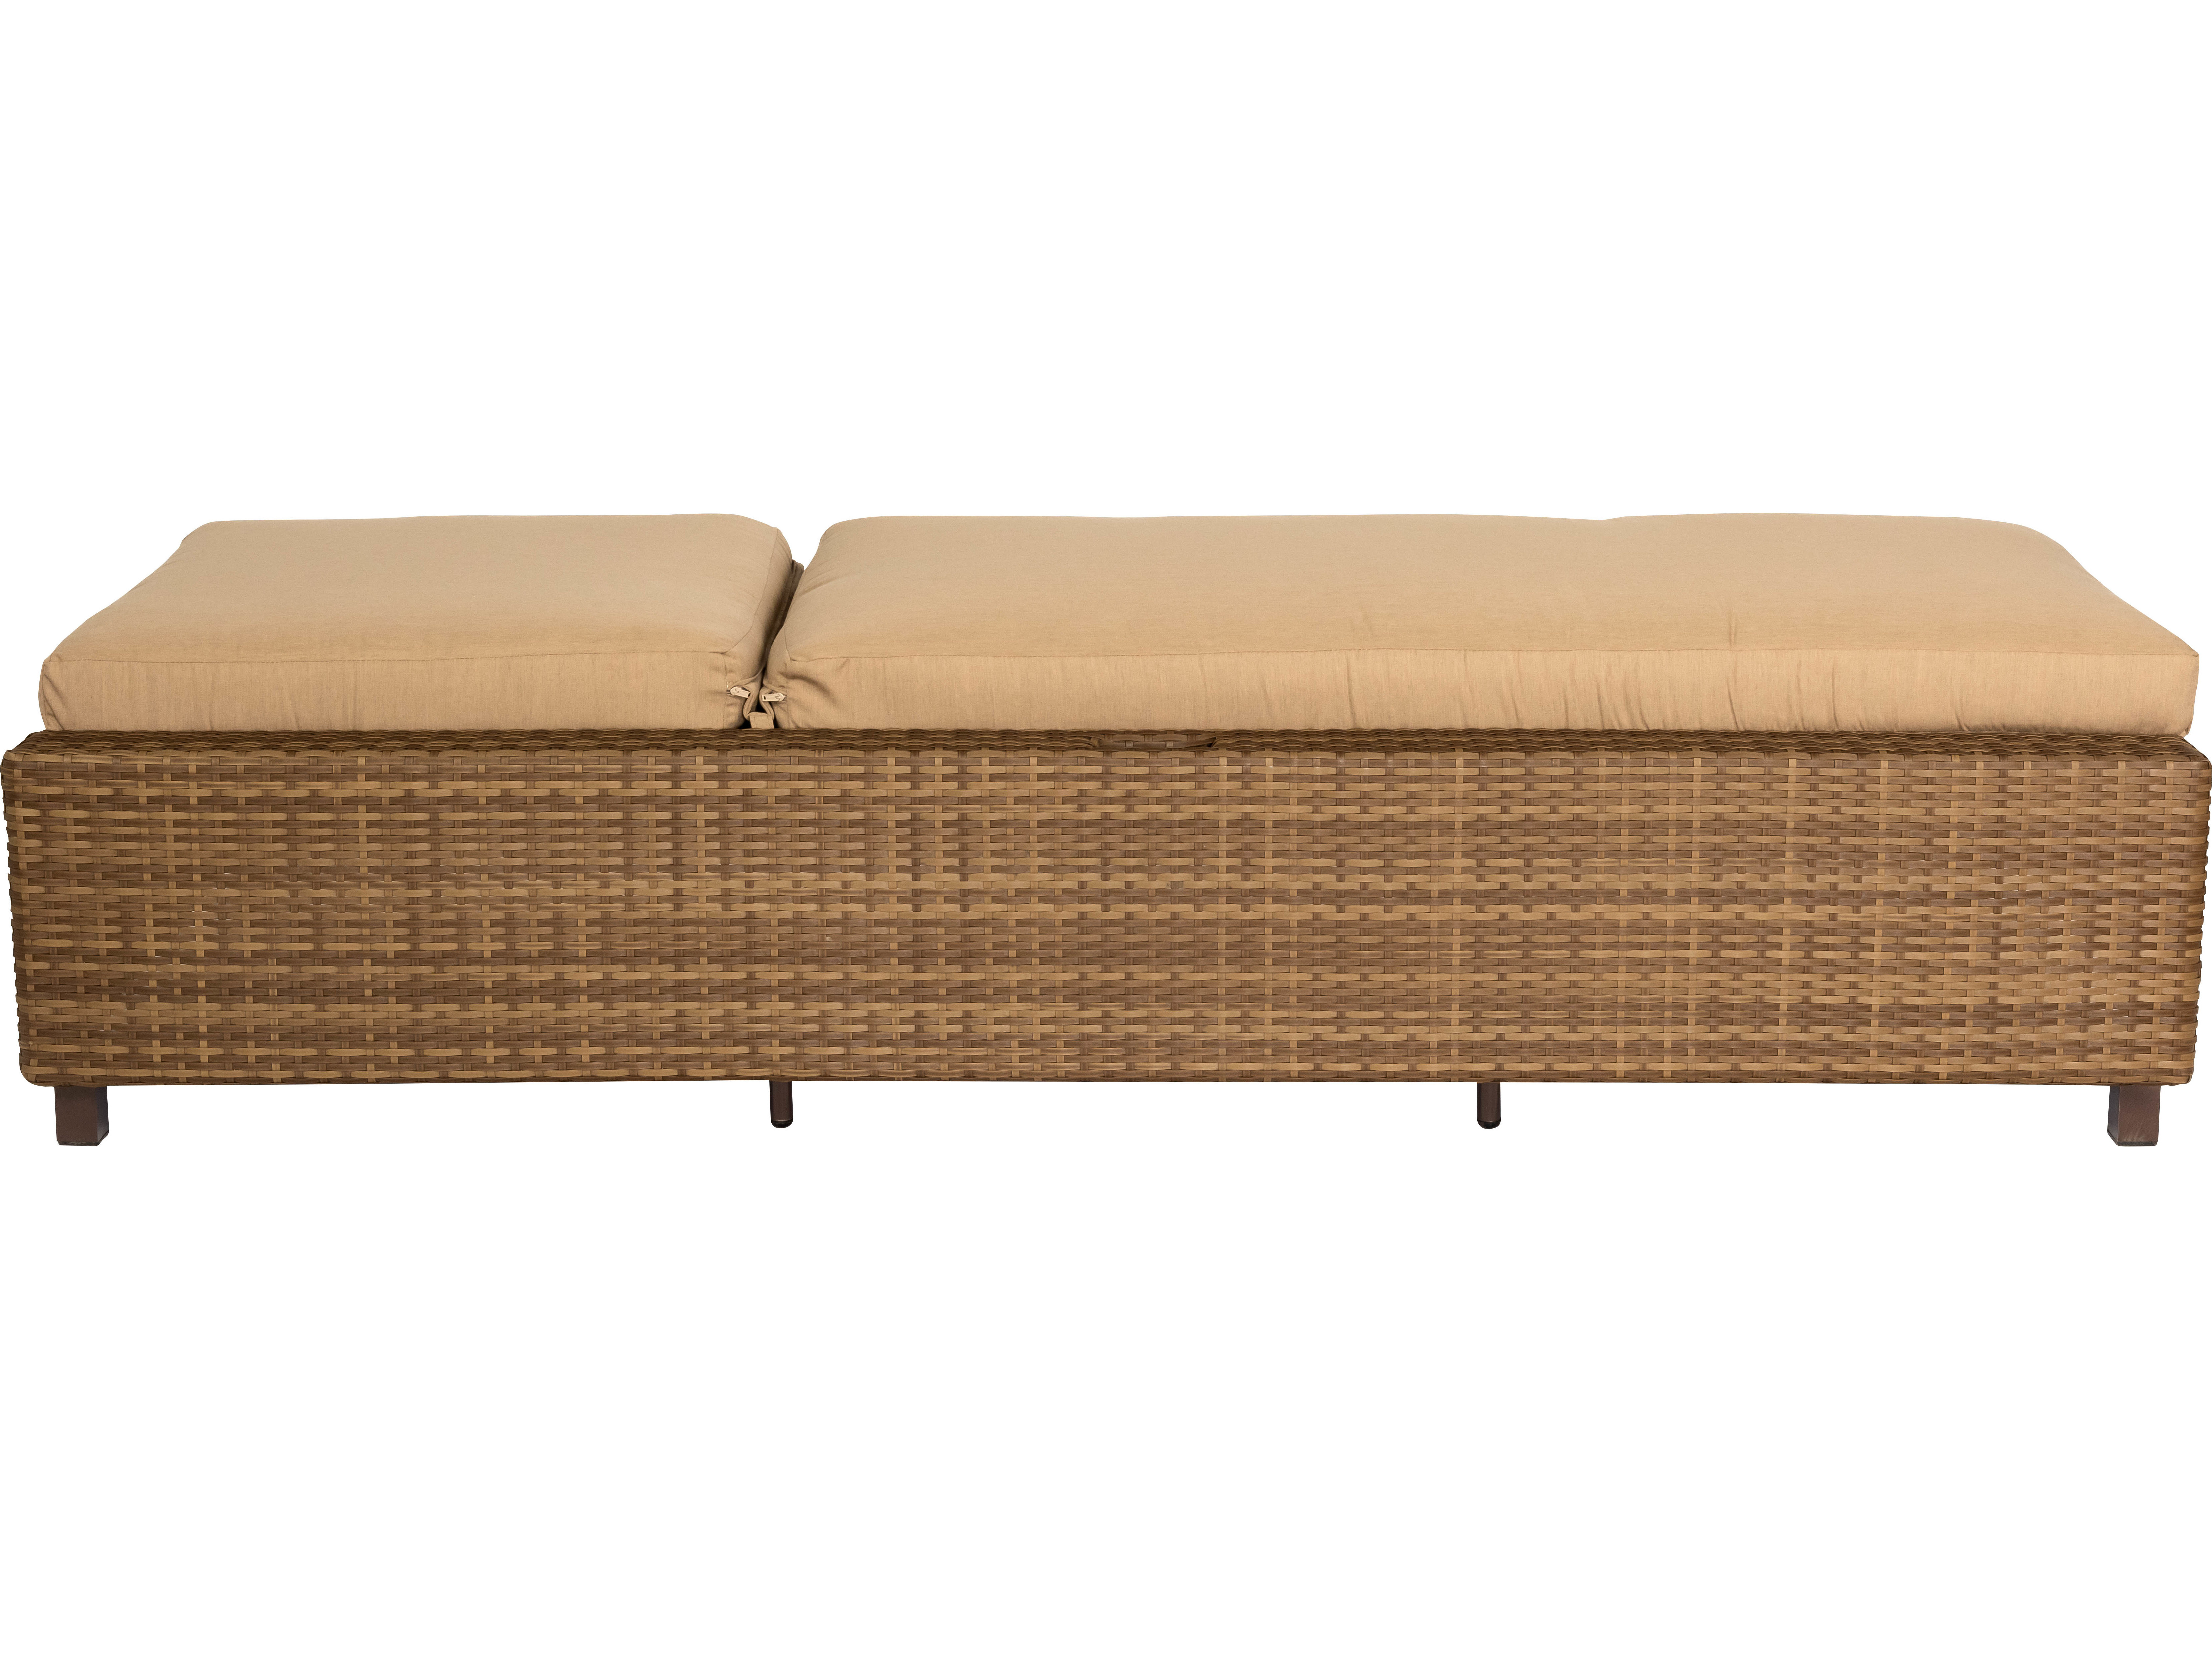 Woodard Whitecraft All Weather Serene Chaise Lounge S593041